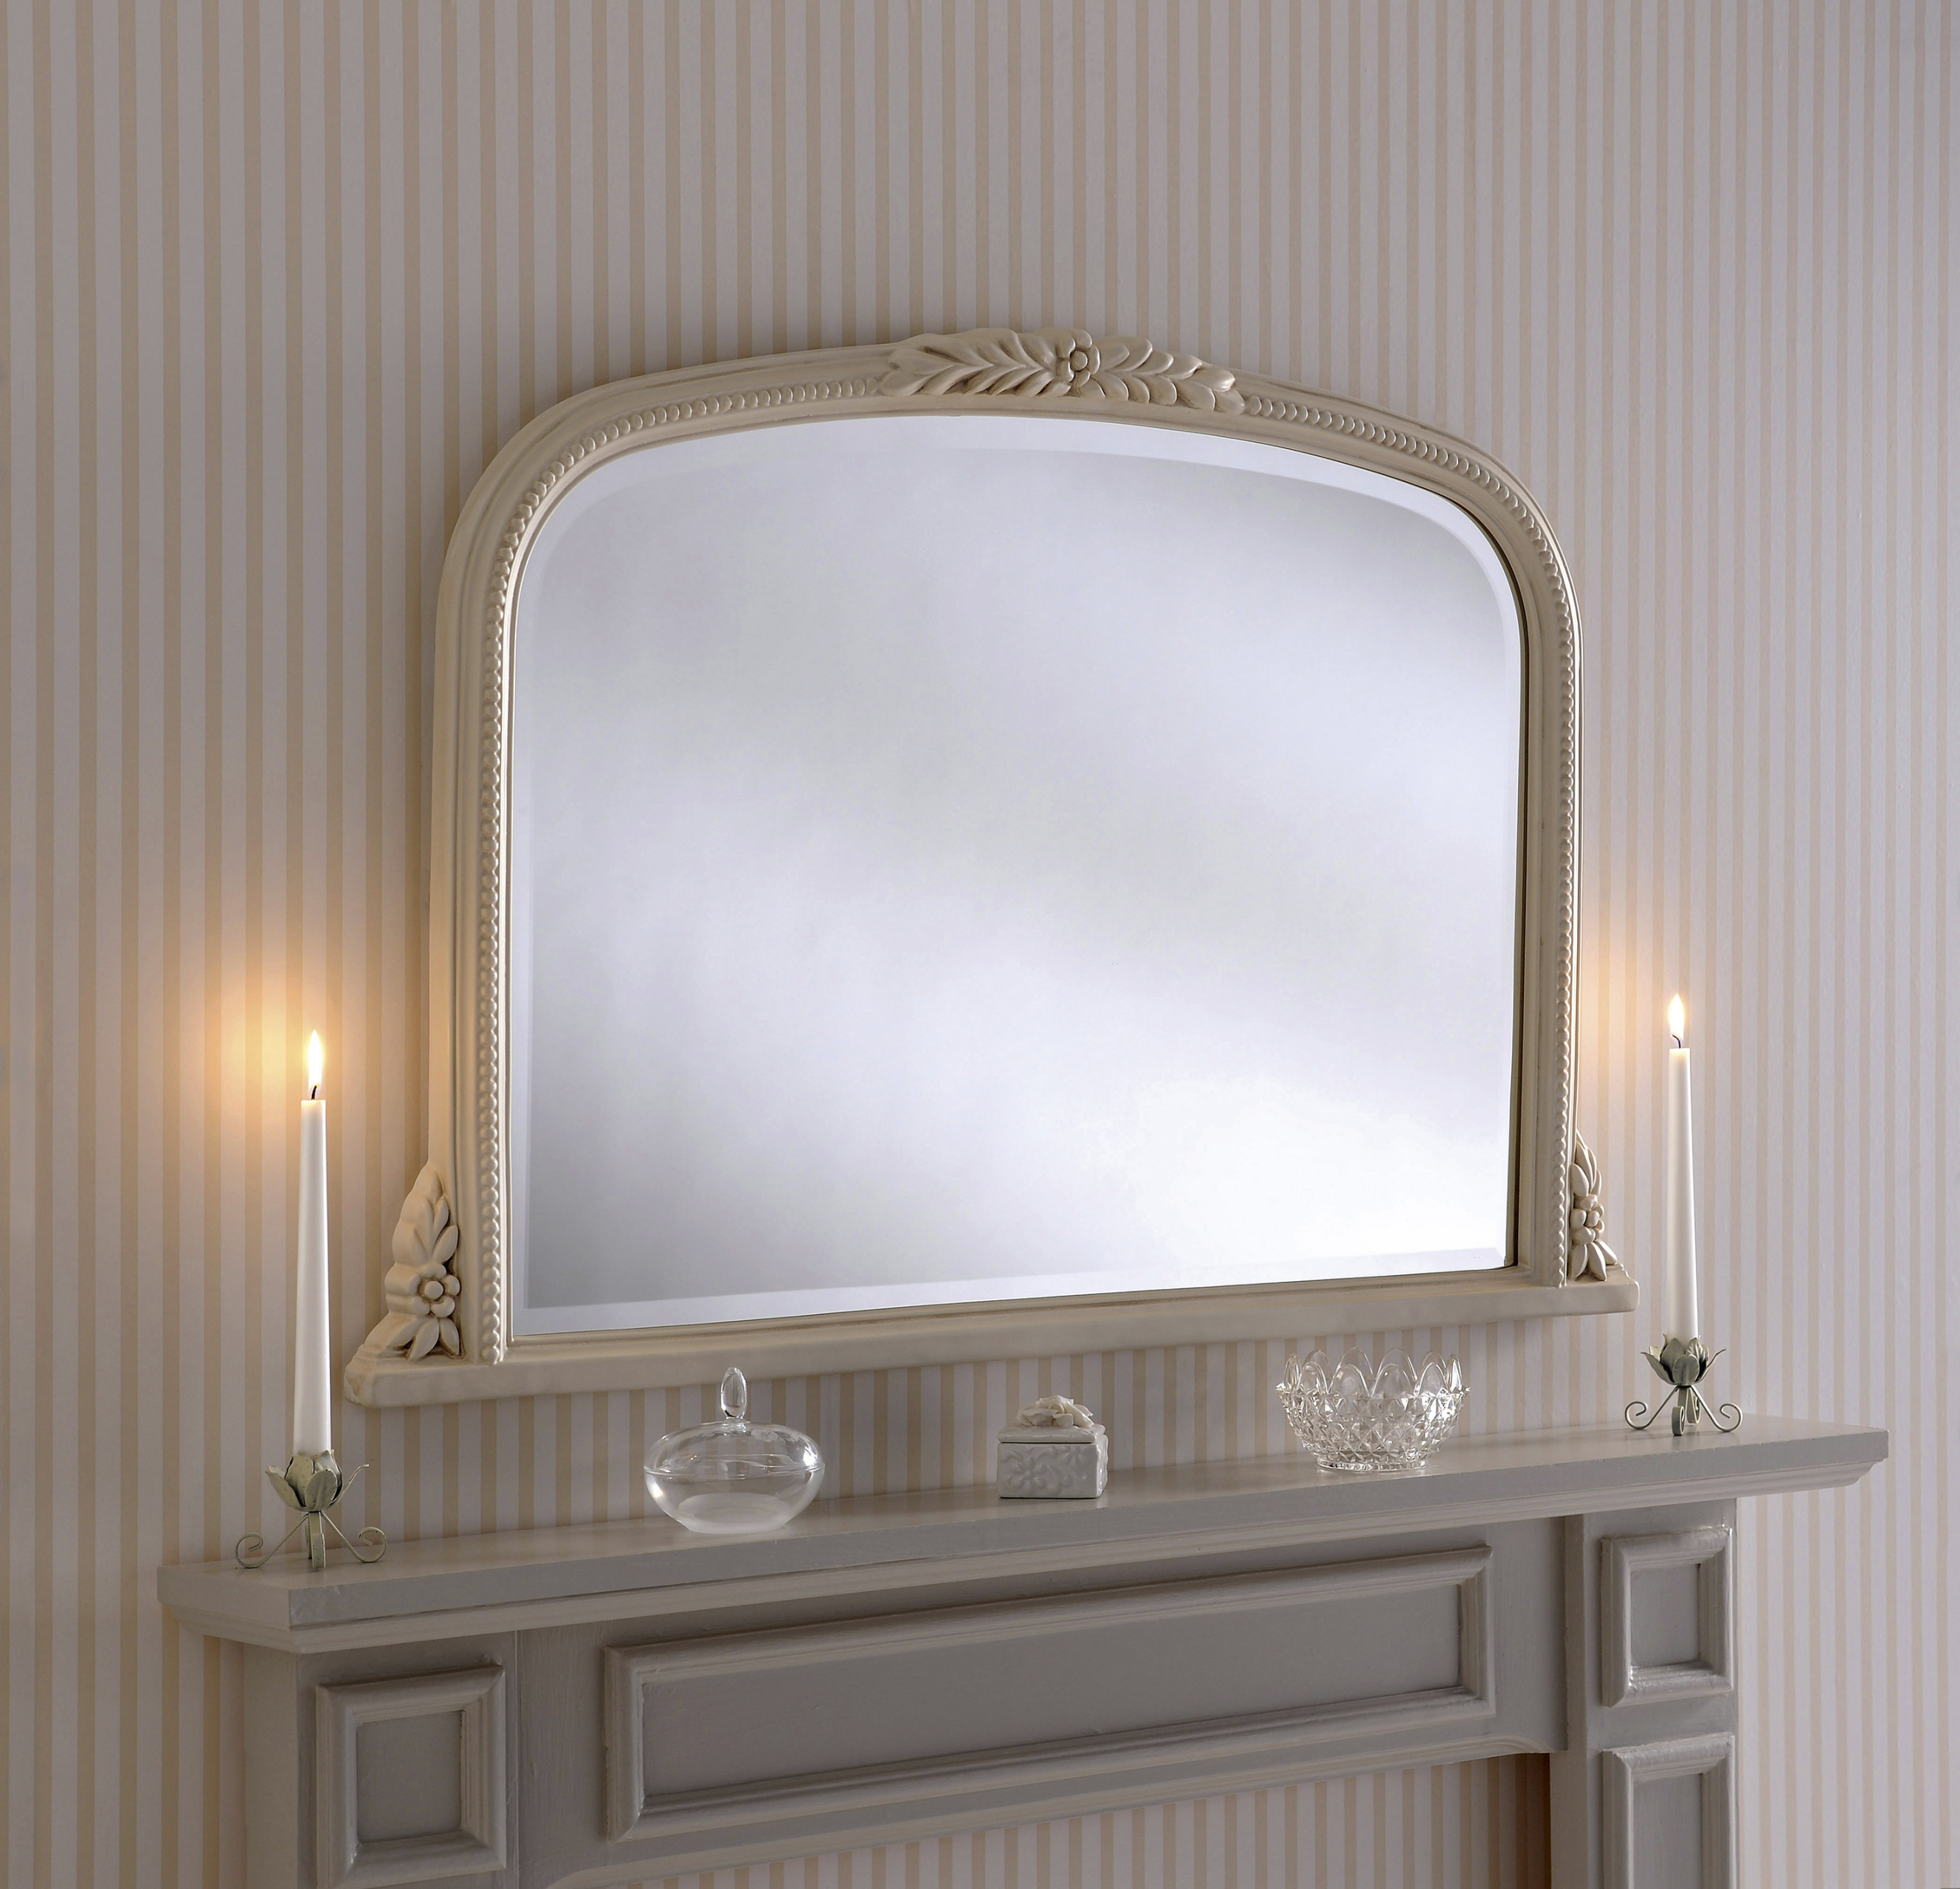 m301 decorative ivory fire overmantle mirror. Black Bedroom Furniture Sets. Home Design Ideas